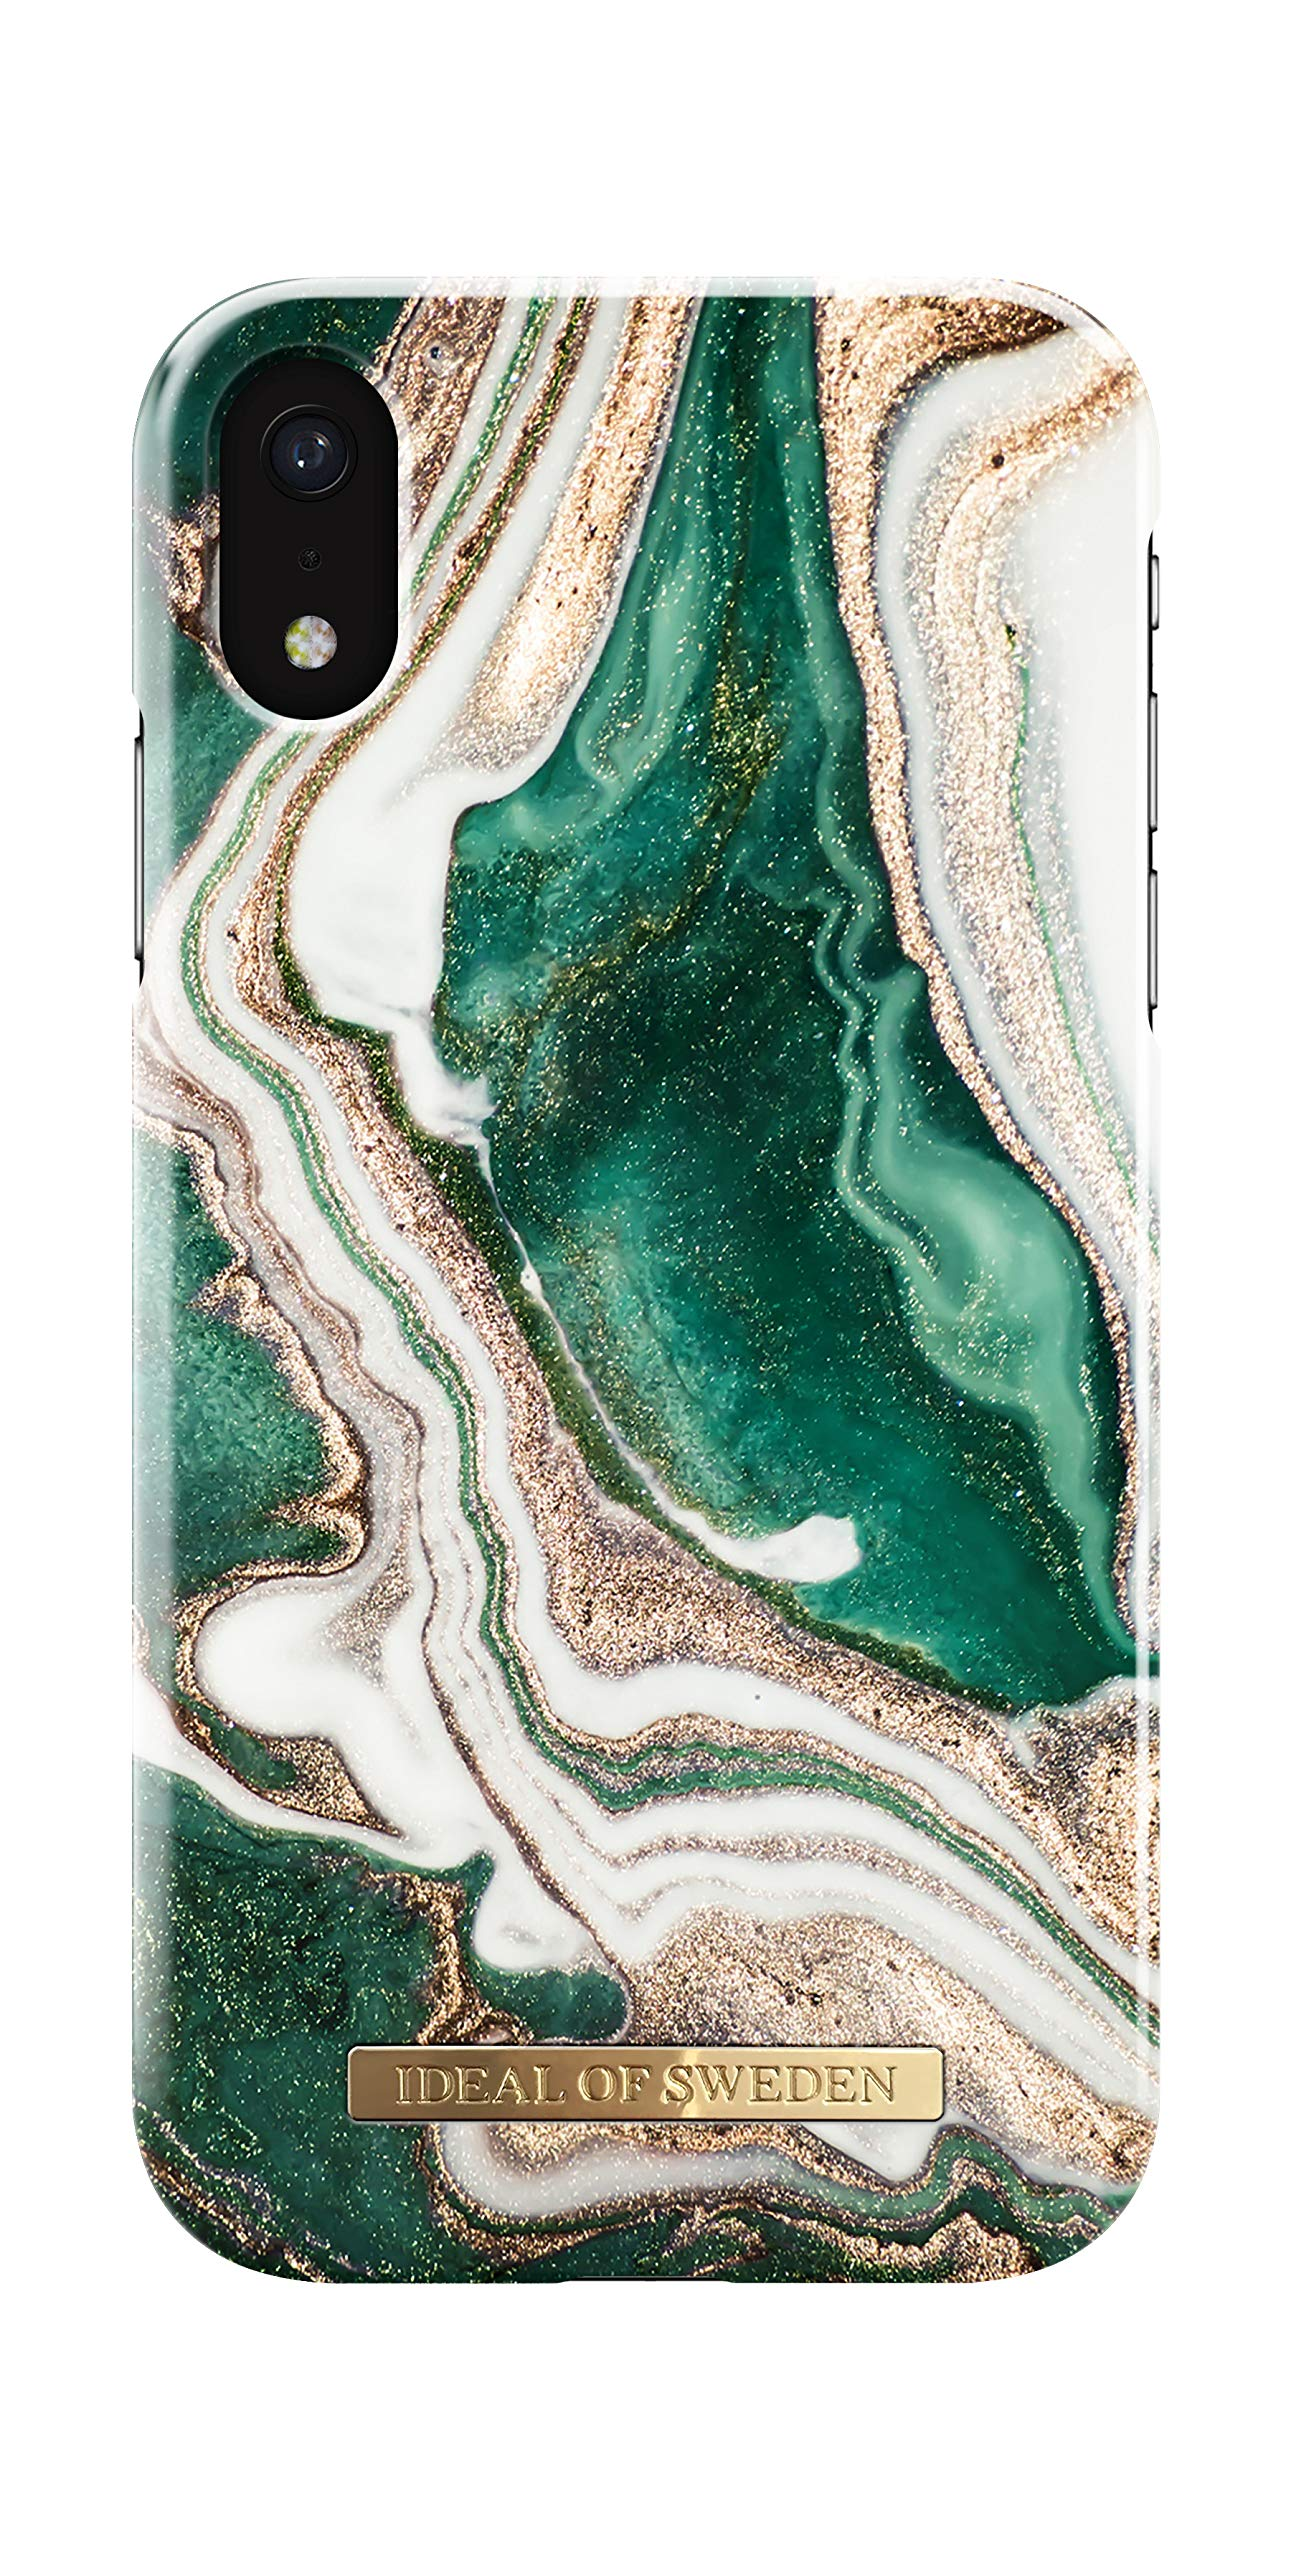 iDeal of Sweden Mobile Phone Case for iPhone XR (Microfiber Lining, Qi Wireless Charger Compatible) (Golden Jade Marble)